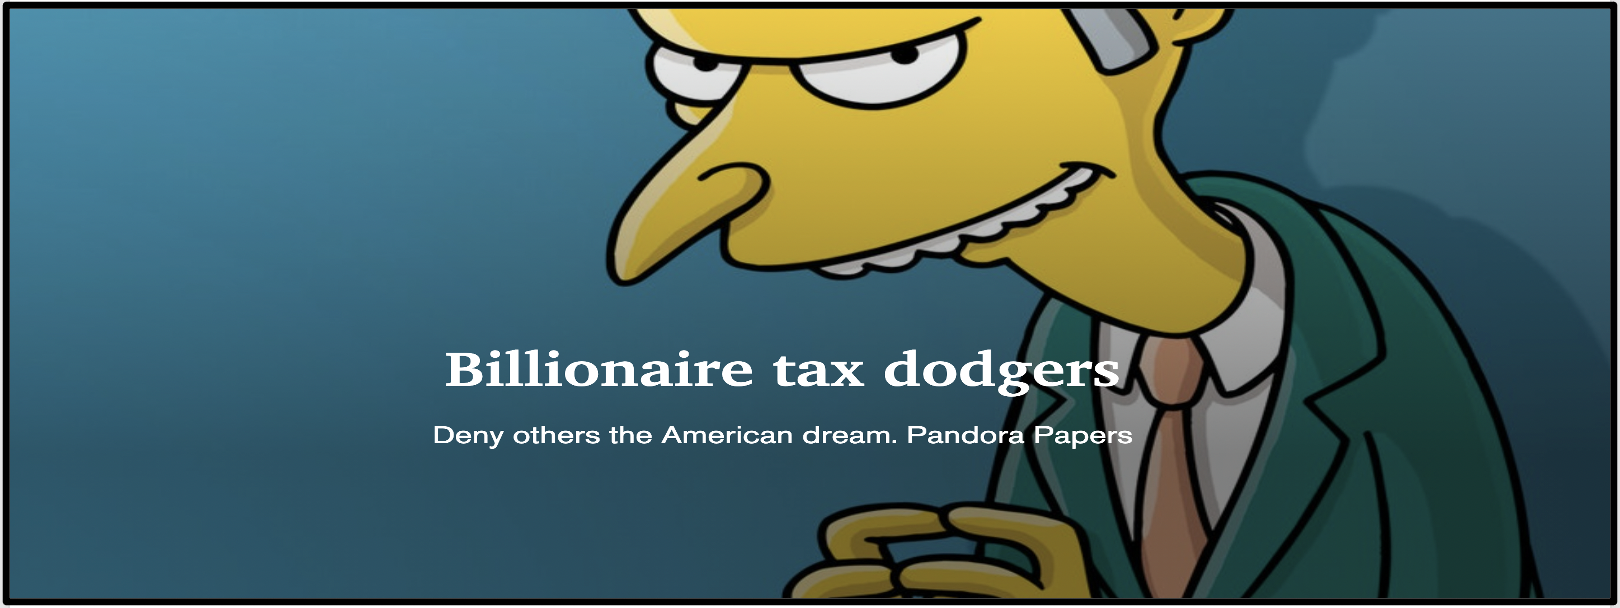 Billionaire tax dodgers fund politicians to cut their taxes and deny others the American dream.